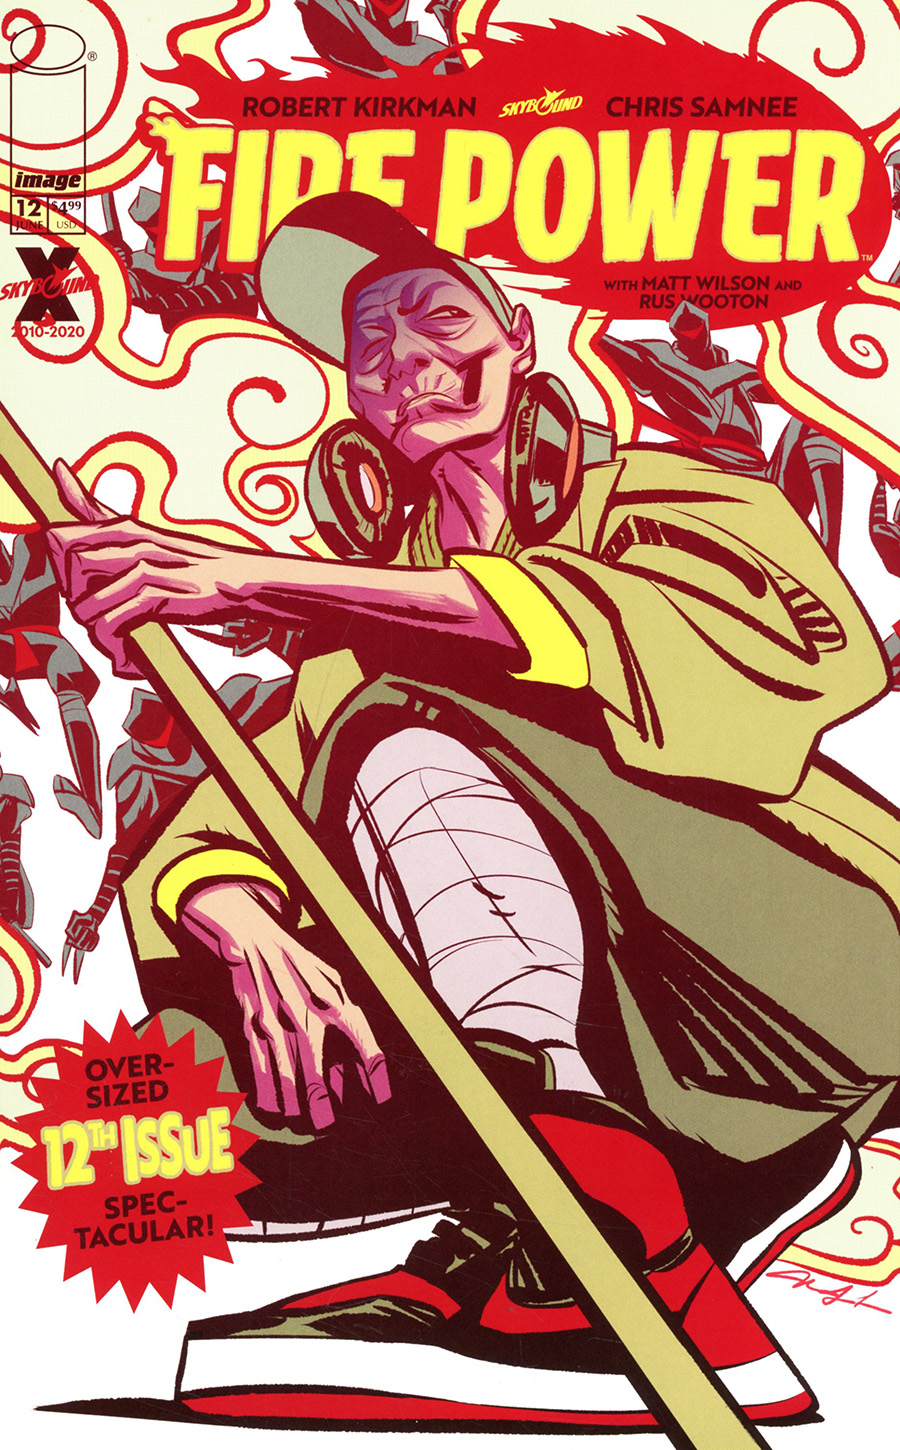 Fire Power By Kirkman & Samnee #12 Cover C Variant Mindy Lee Cover